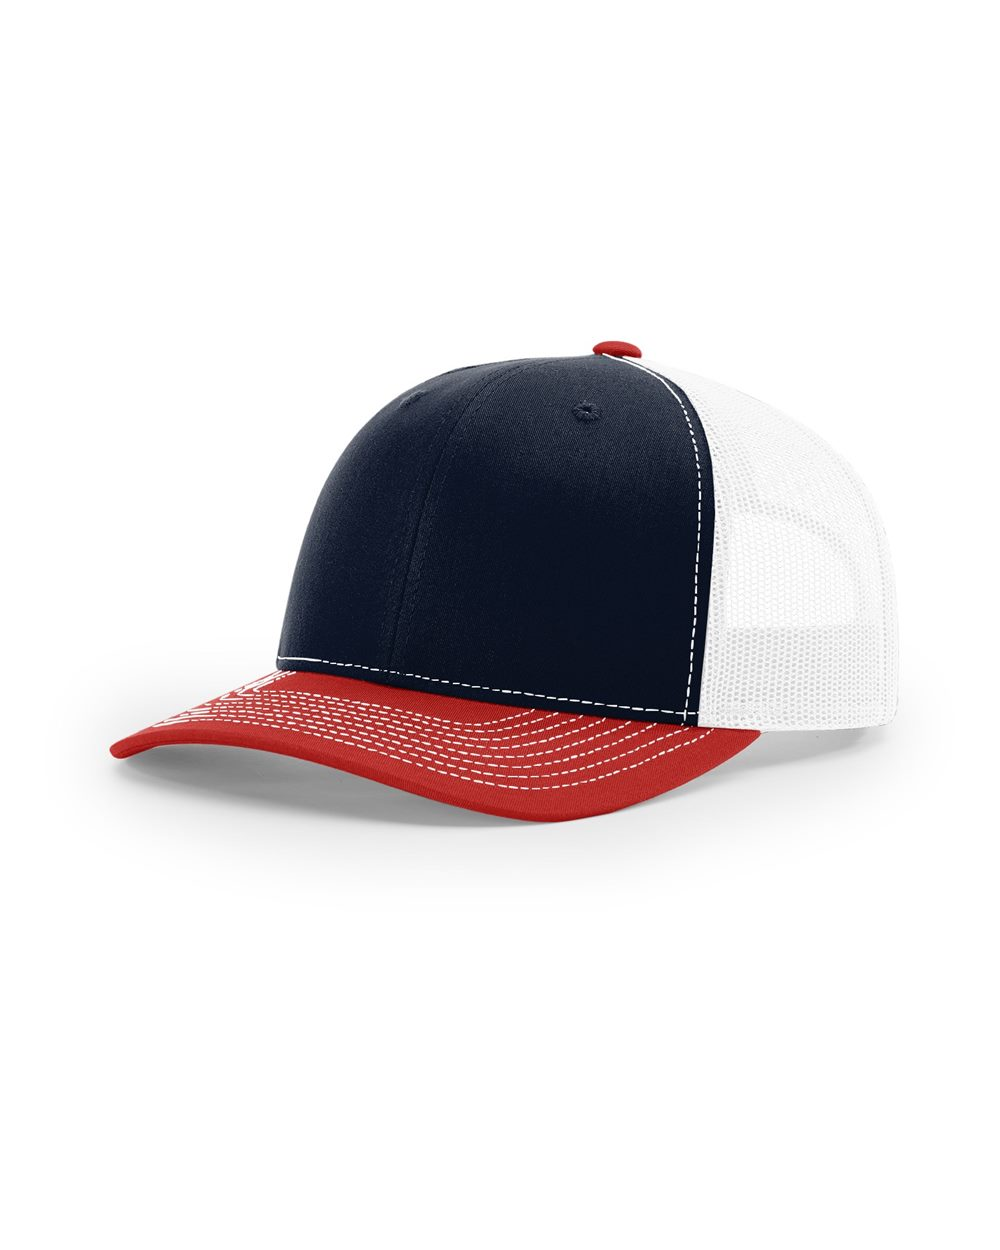 click to view Navy/ White/ Red